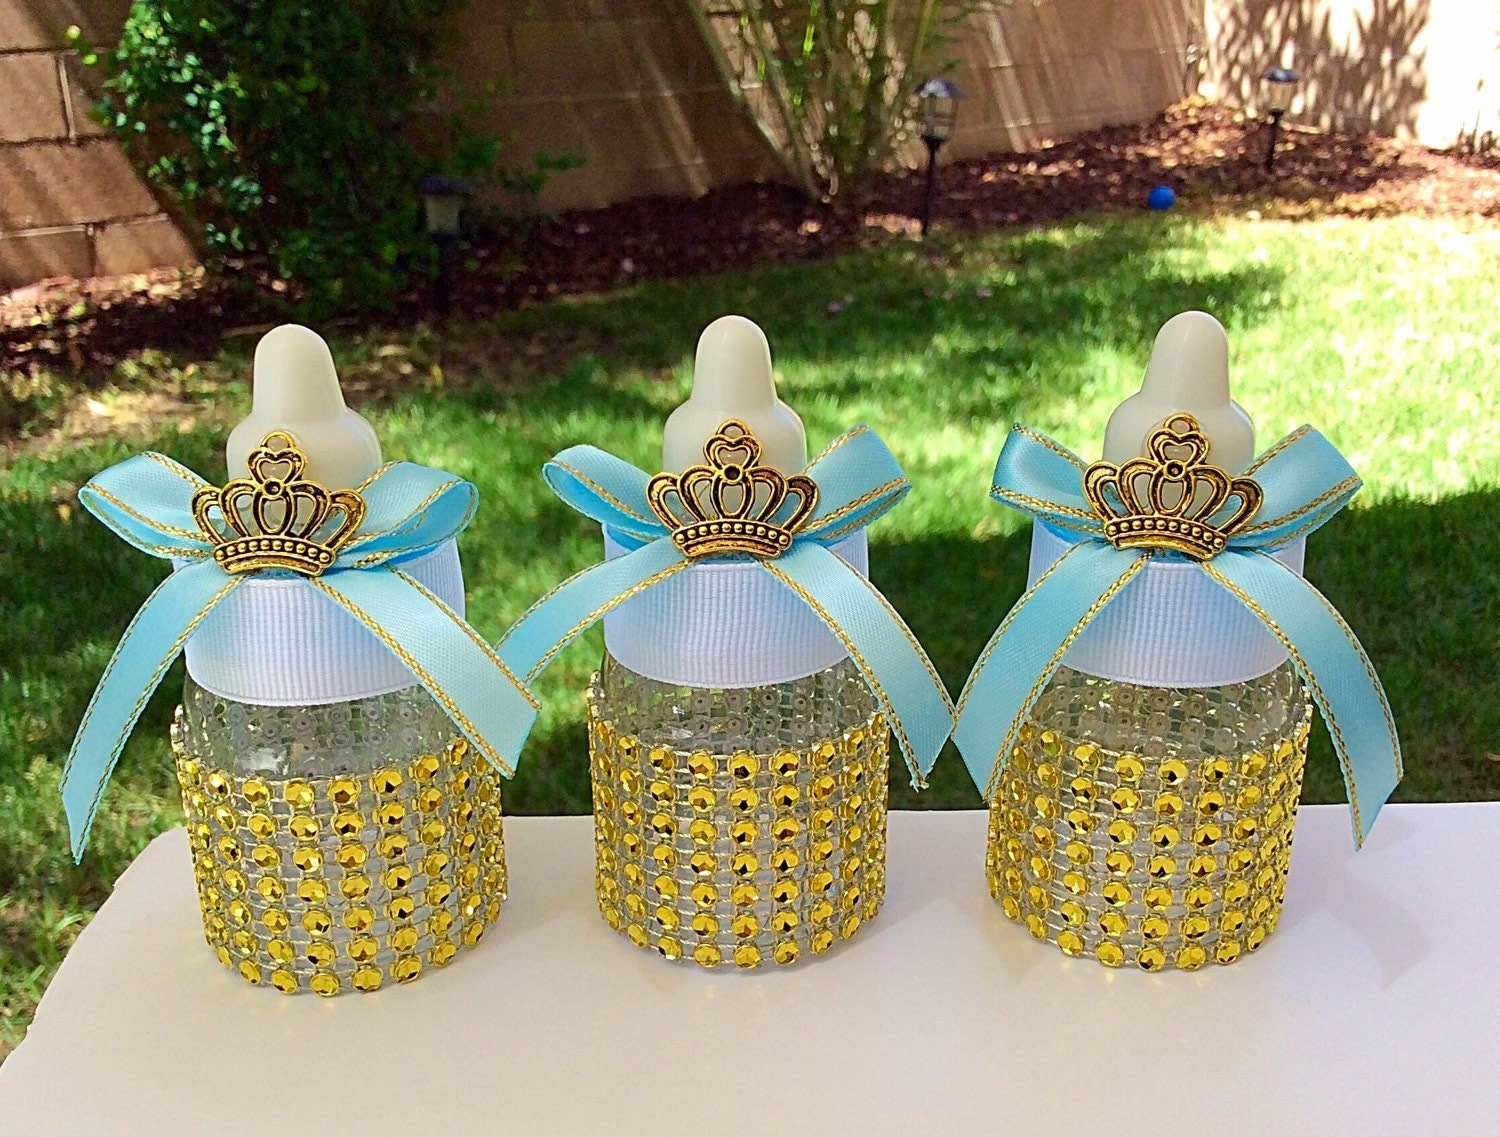 12 royal prince baby shower favors little by marshmallowfavors for A new little prince baby shower decoration kit